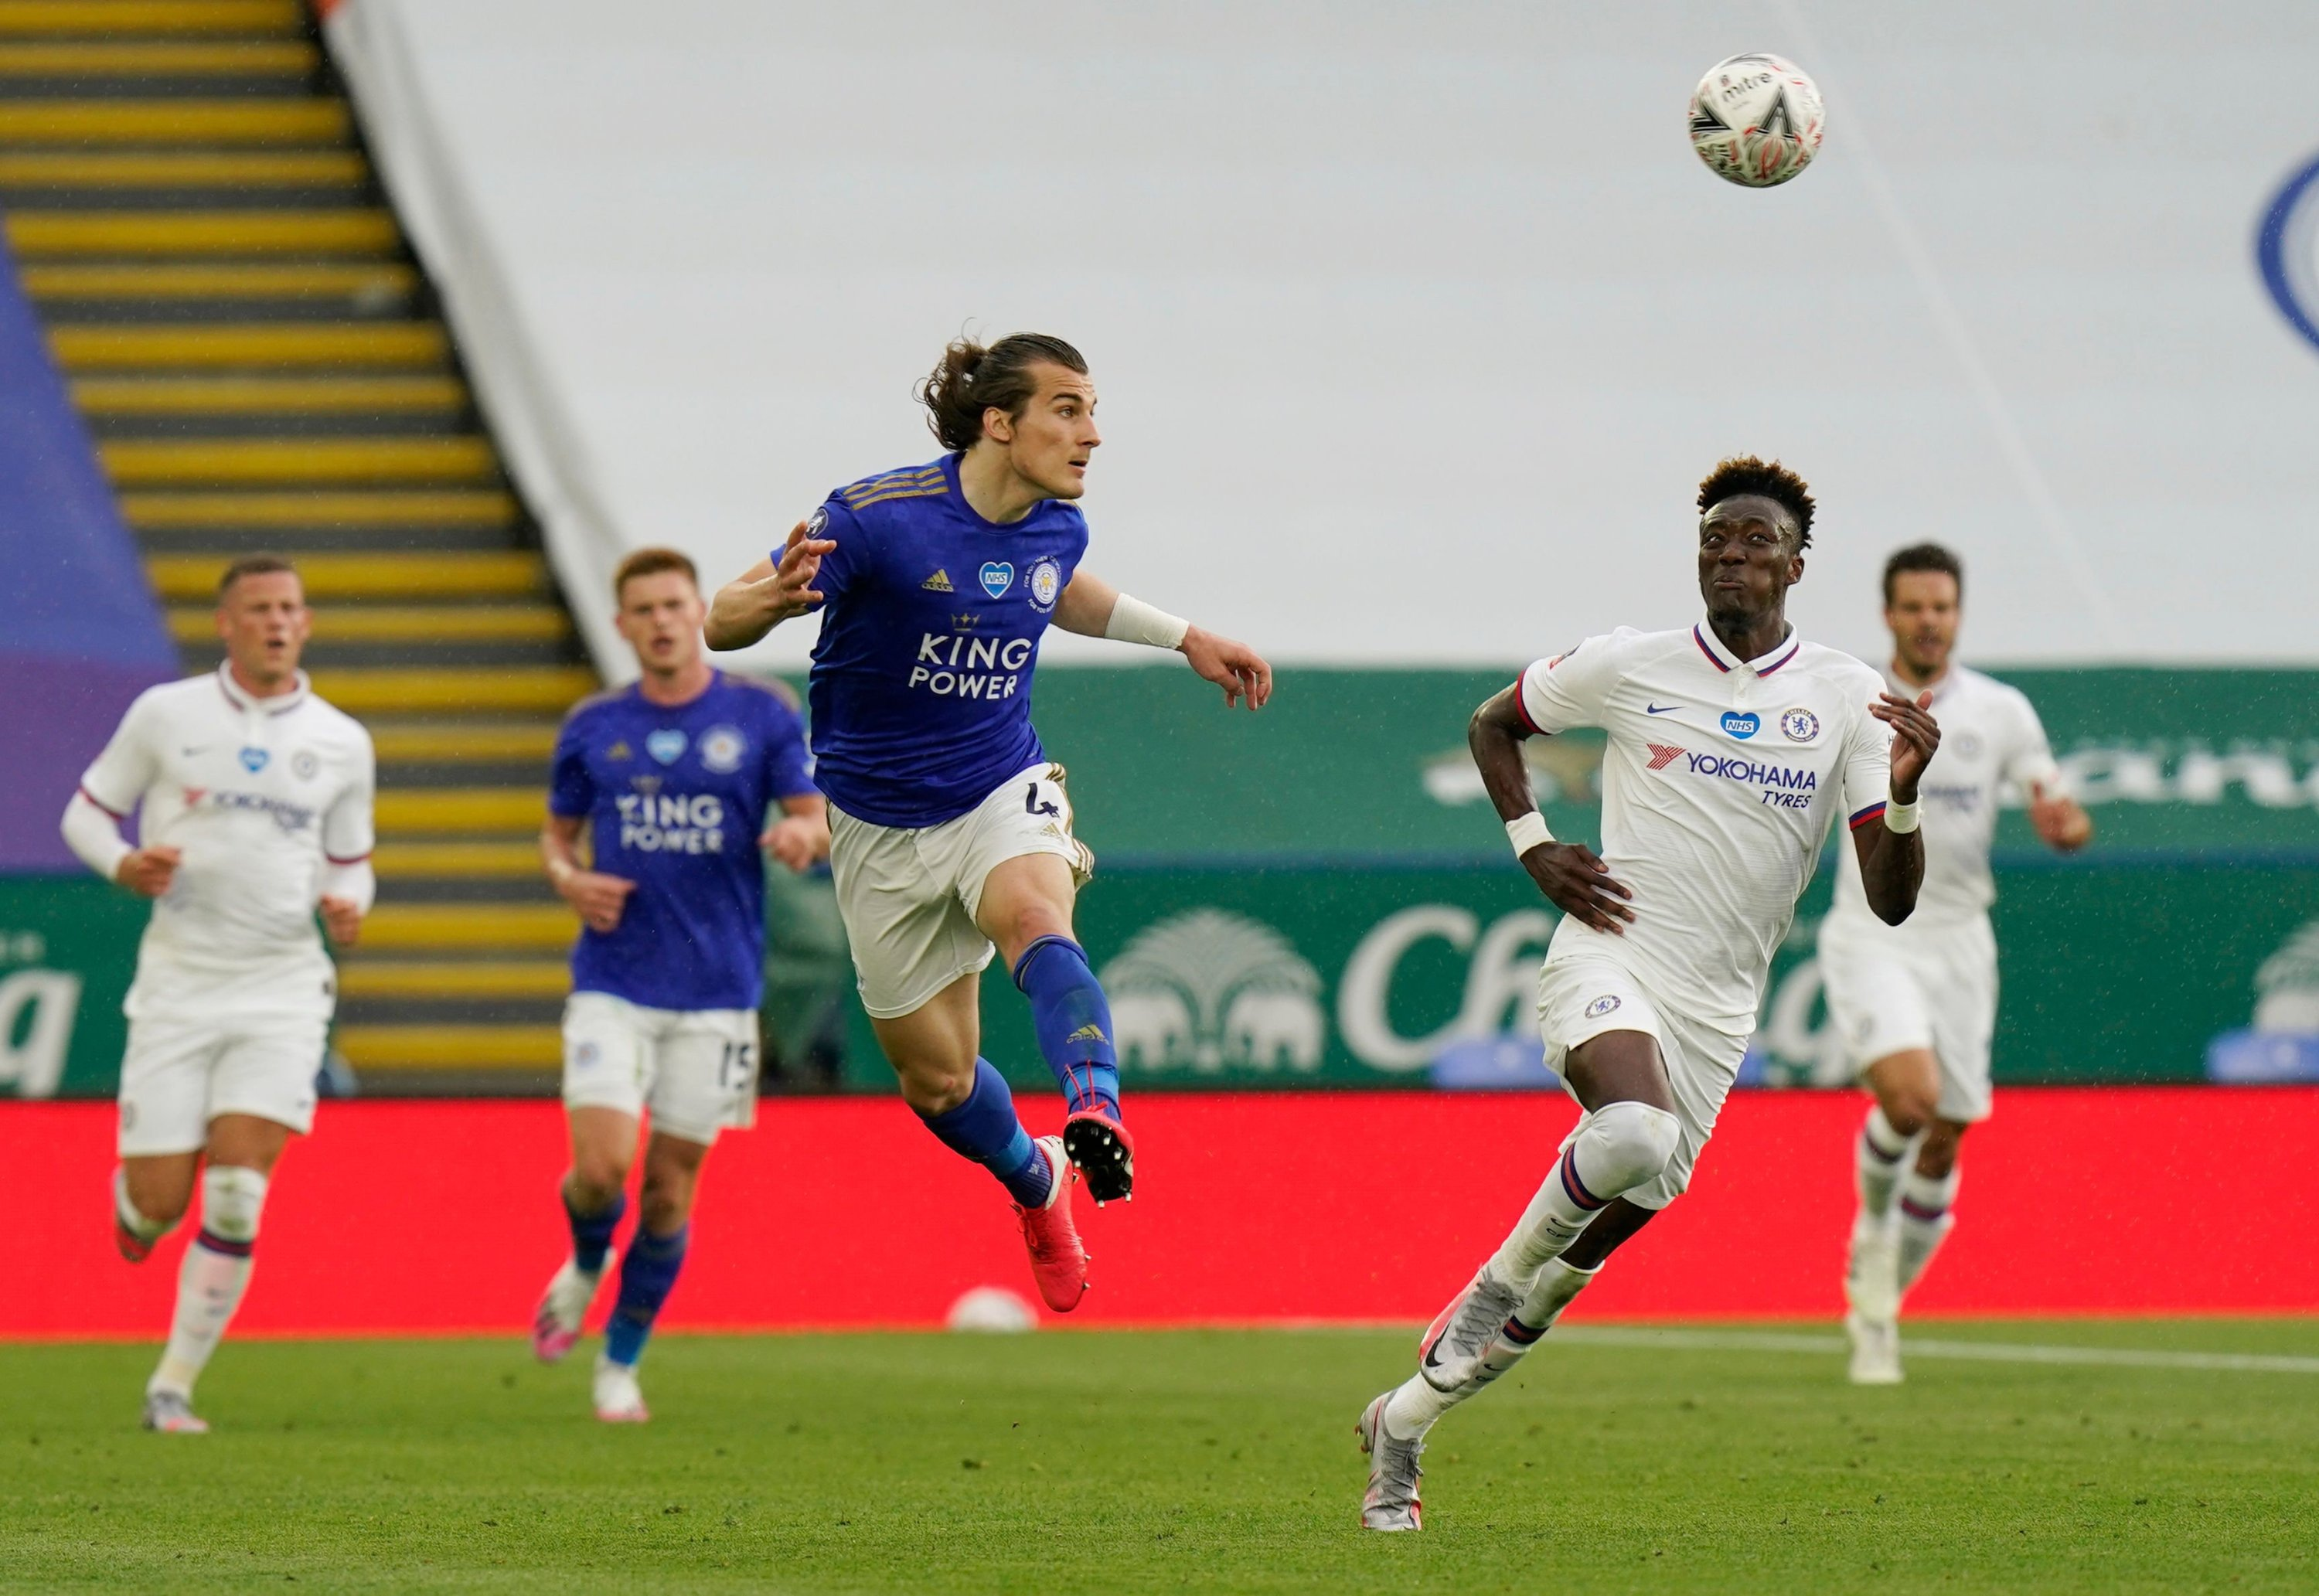 Leicester City's Çağlar Söyüncü in action with Chelsea's Tammy Abraham, at King Power Stadium, Leicester, the U.K., June 28, 2020. (Reuters Photo)